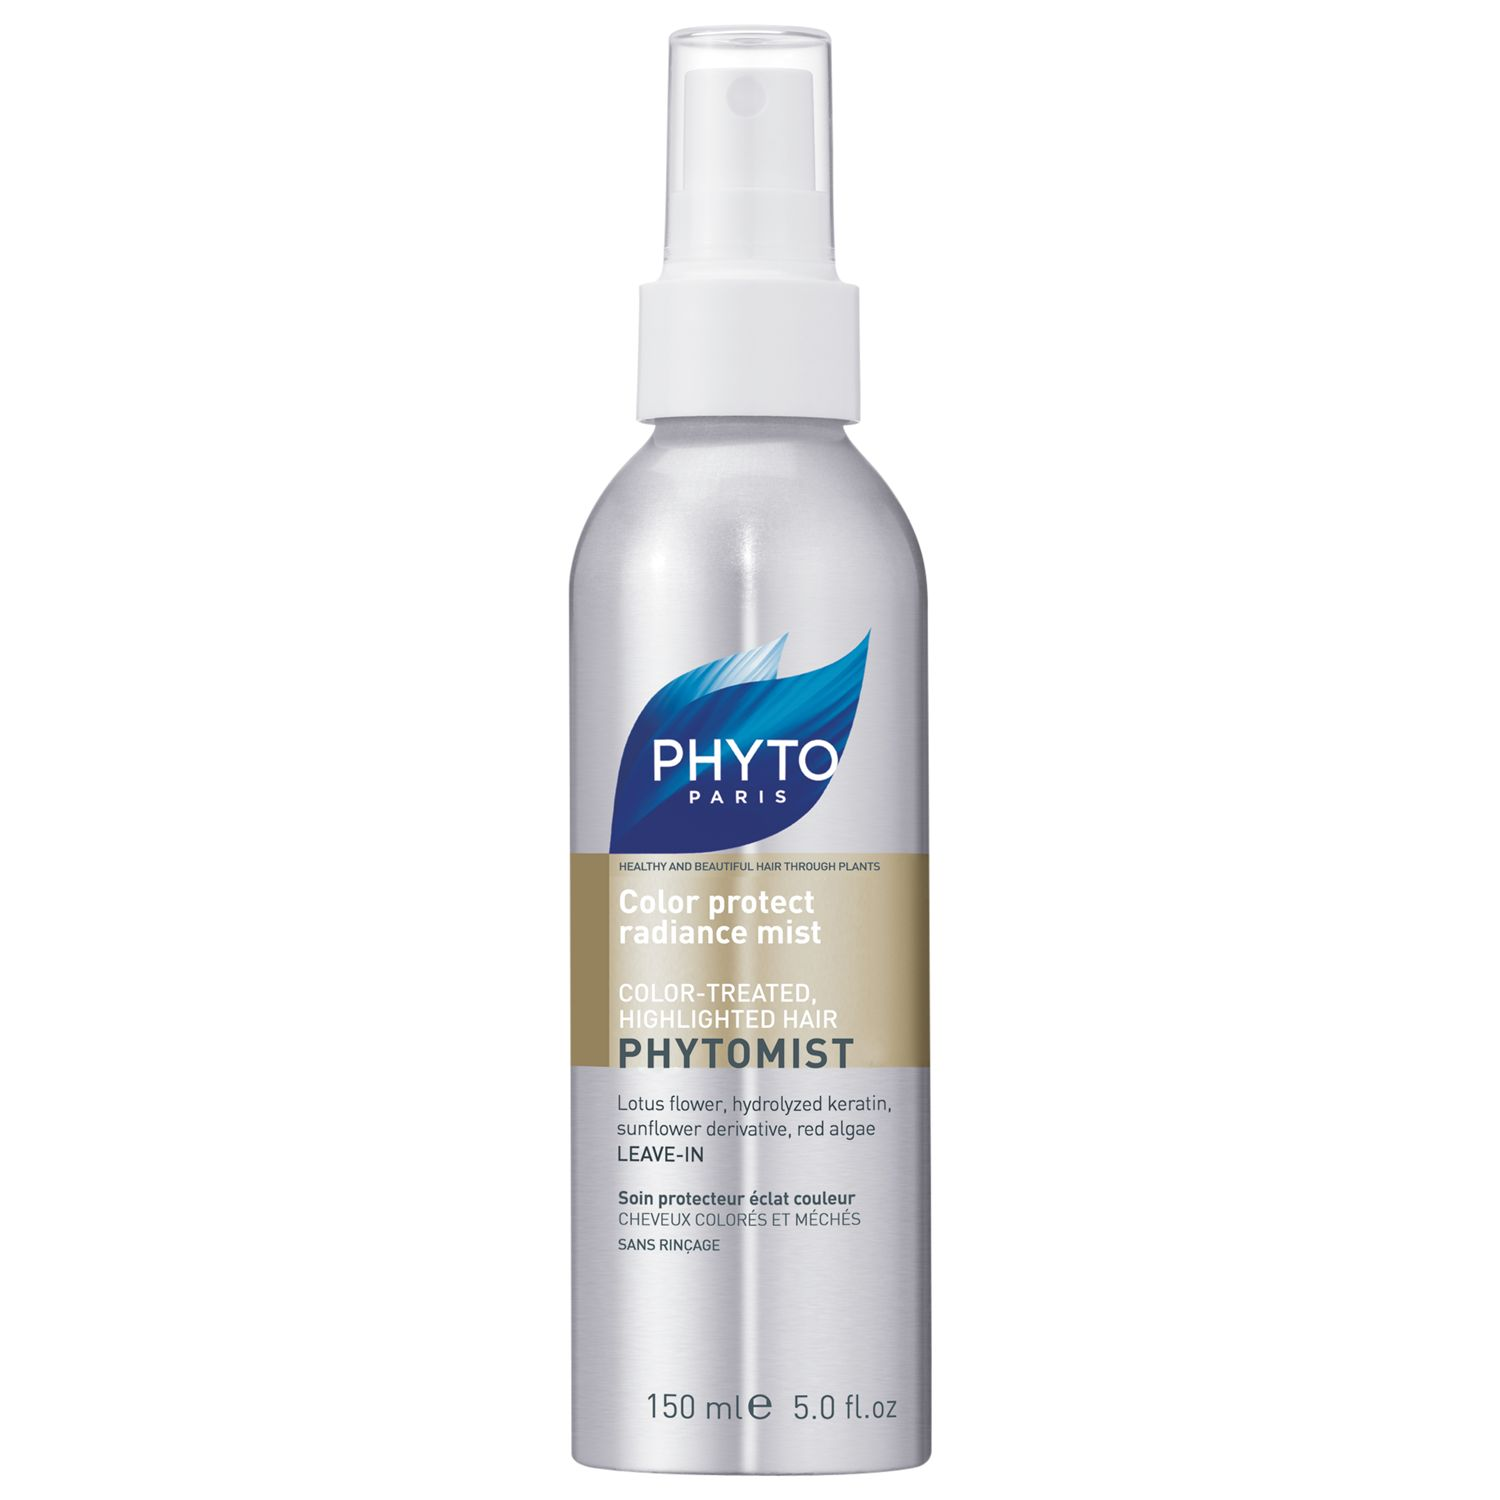 Phyto Phyto Phytomist Colour Protect Mist, 150ml